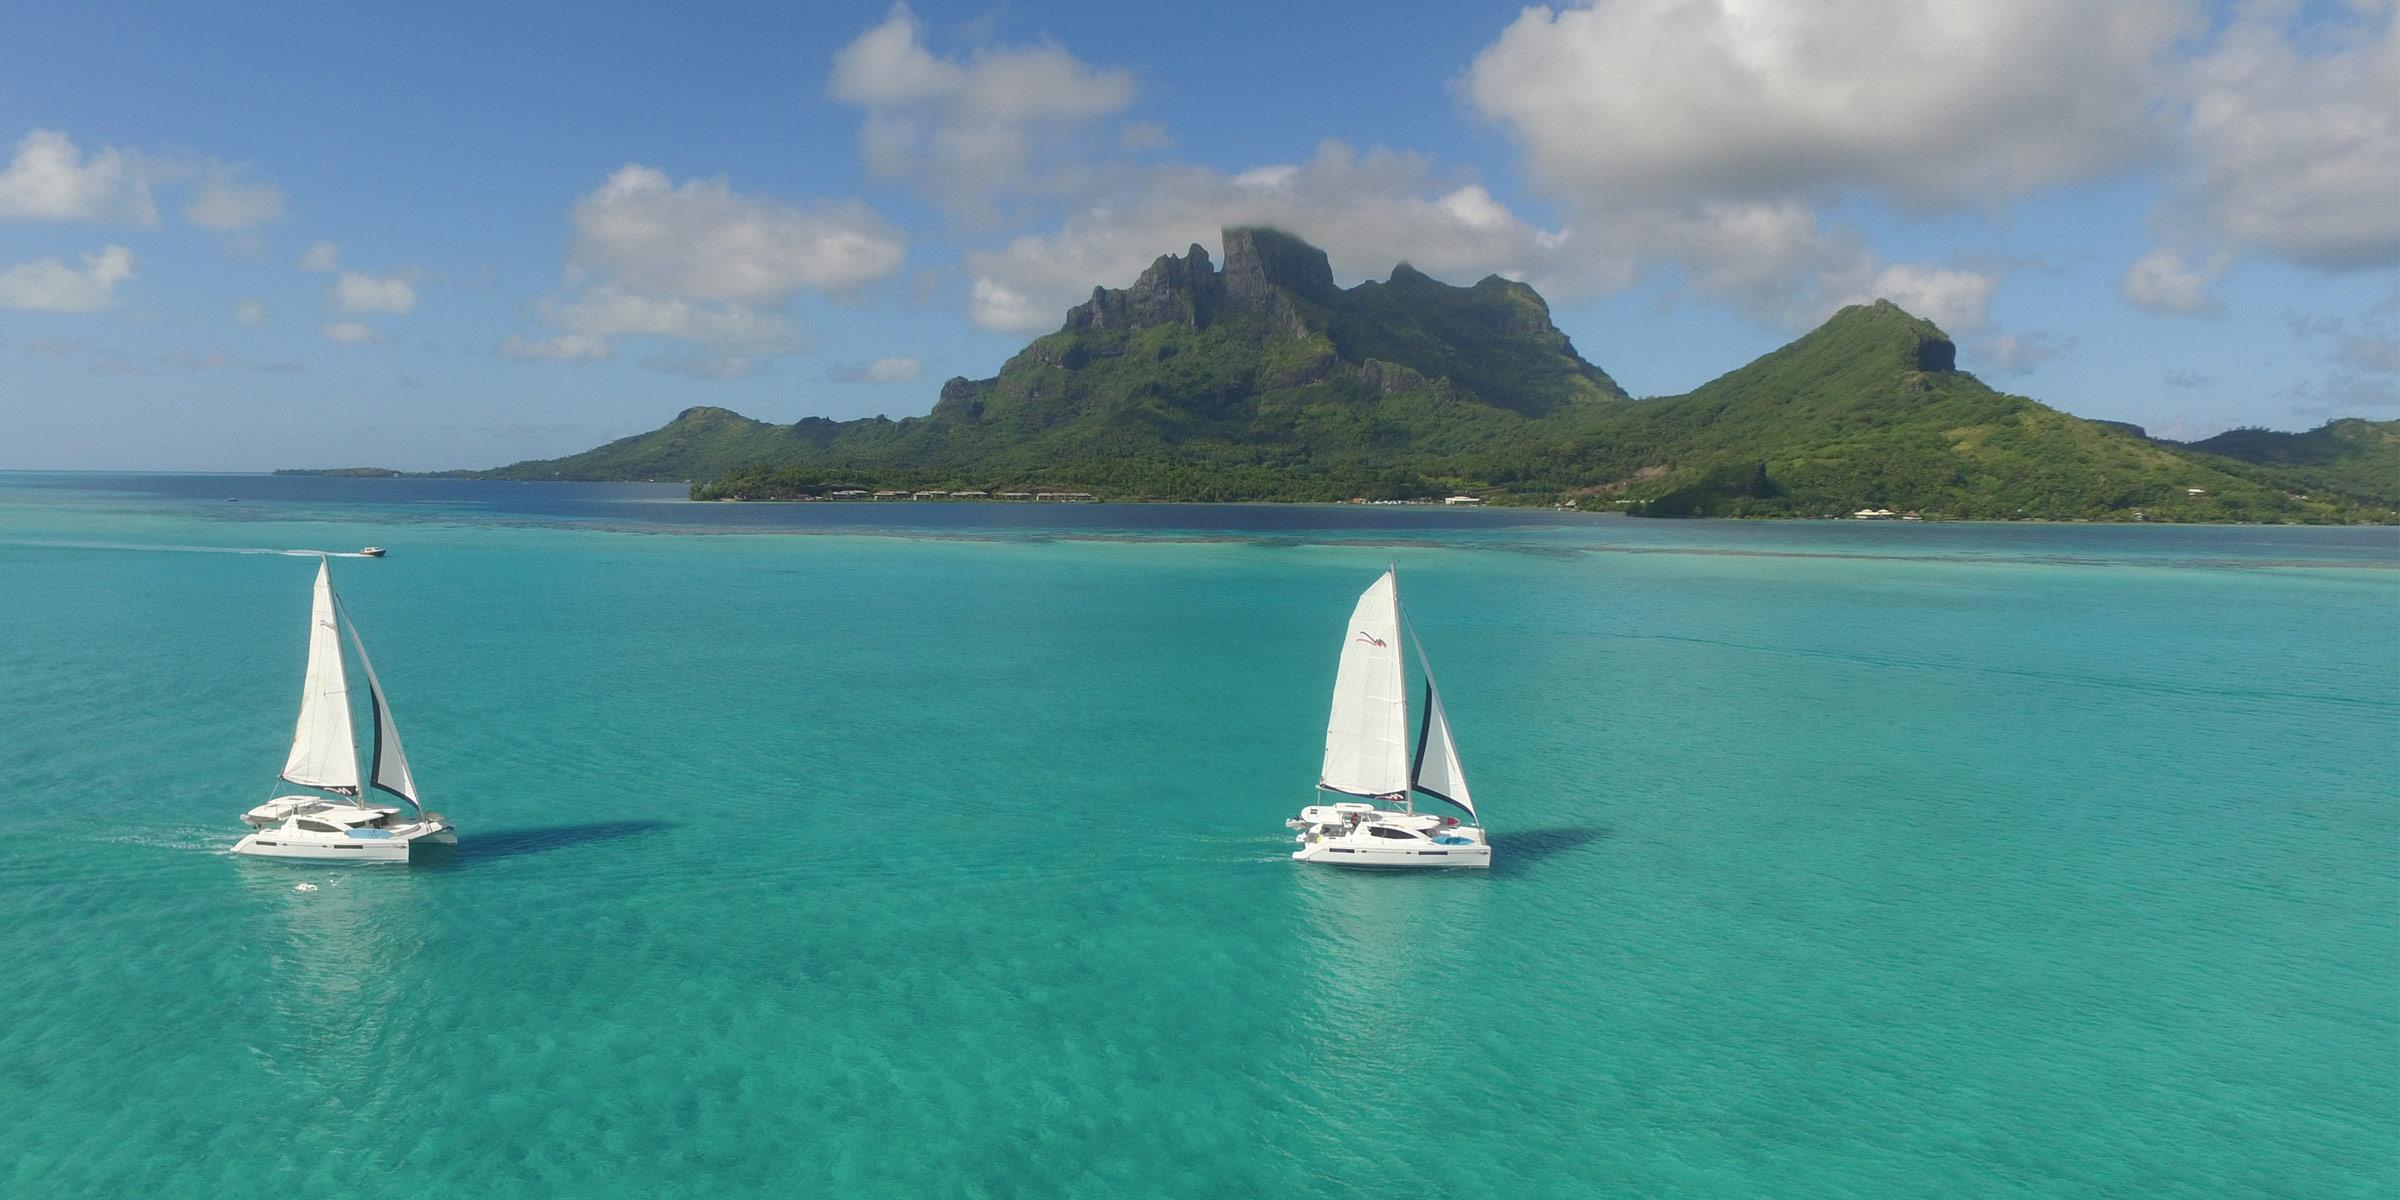 Two Moorings 4800 under sail with Bora Bora in the background